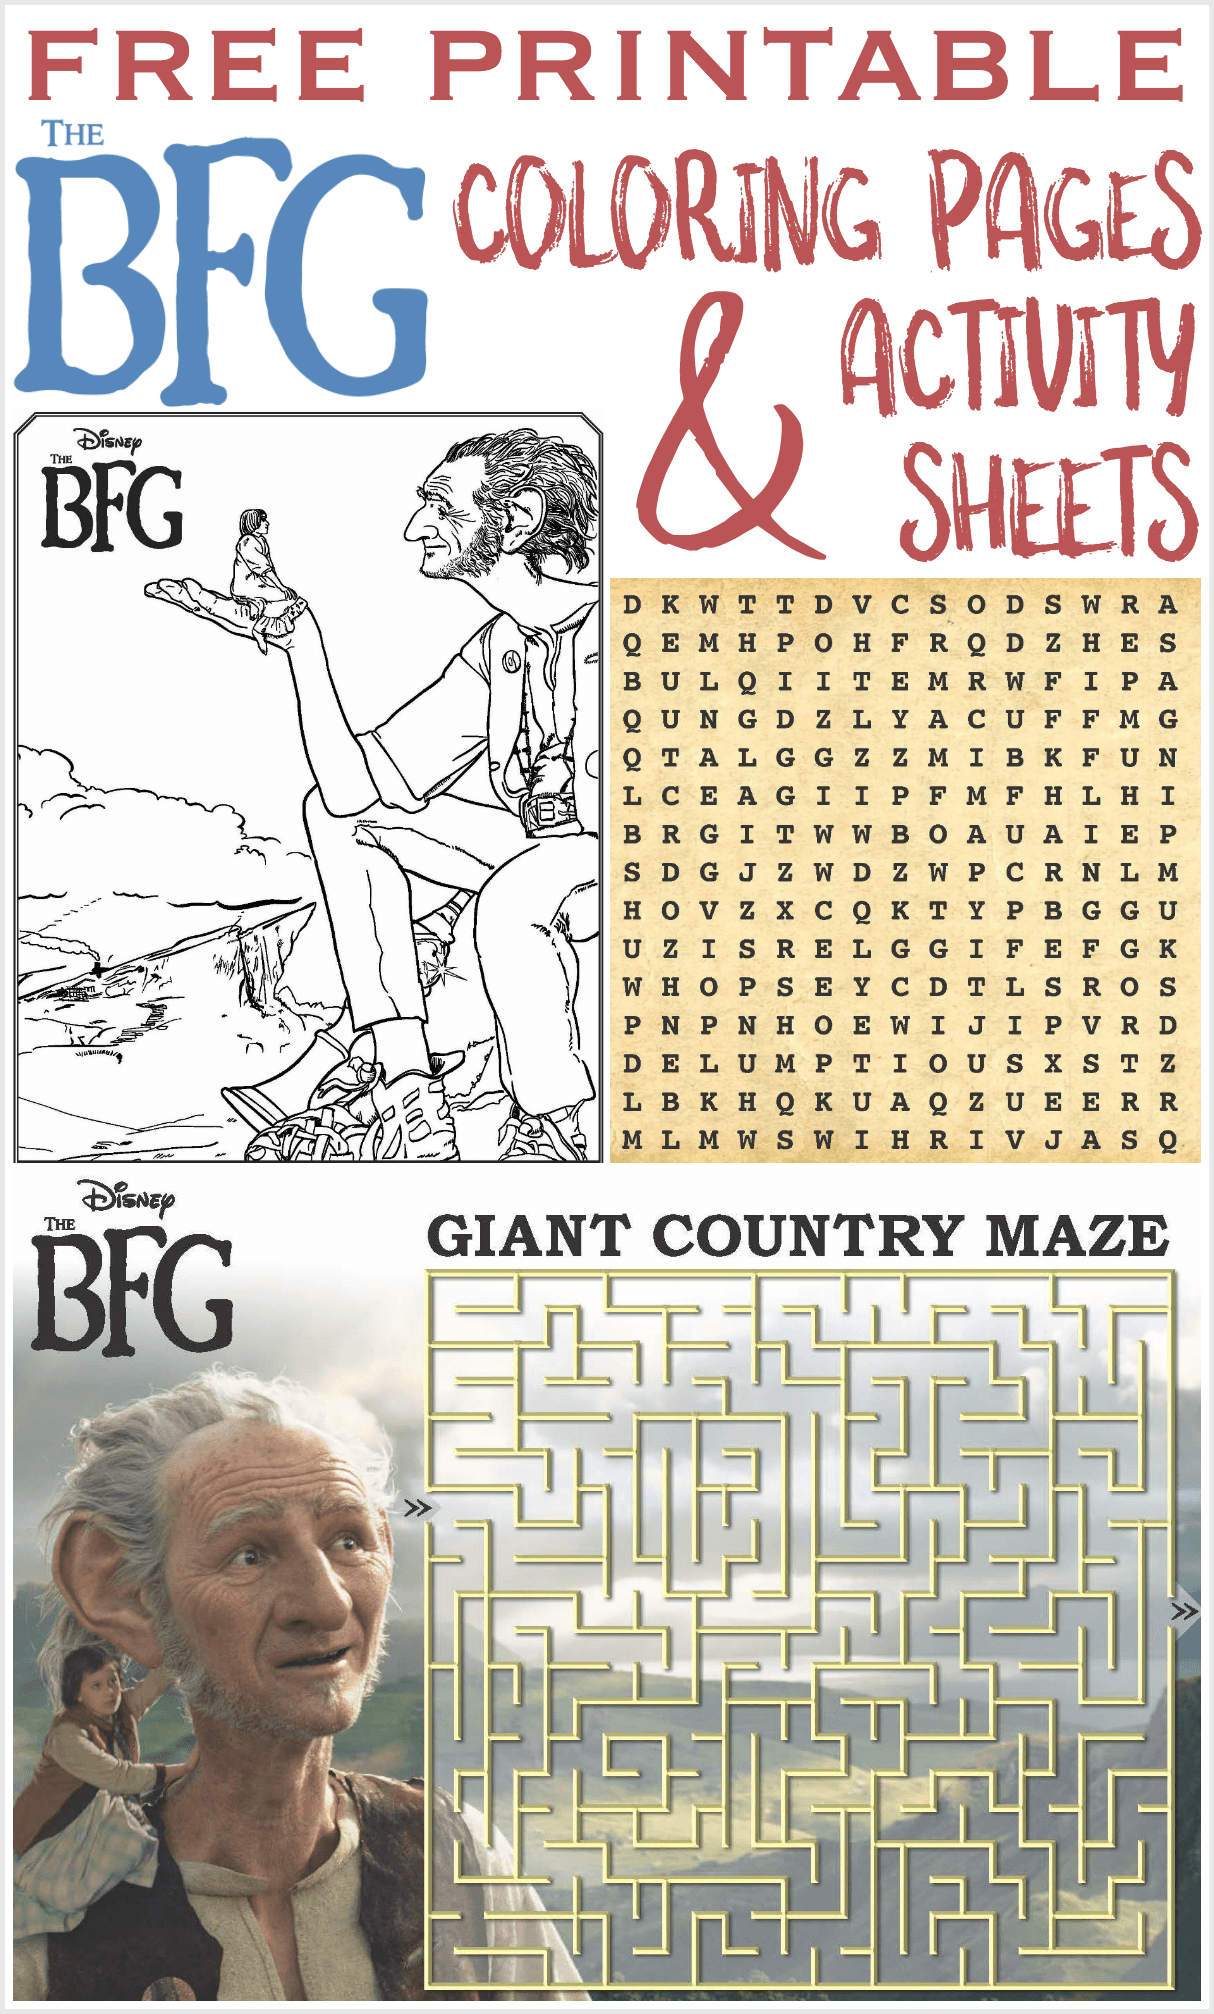 The BFG printable coloring pages activity sheets